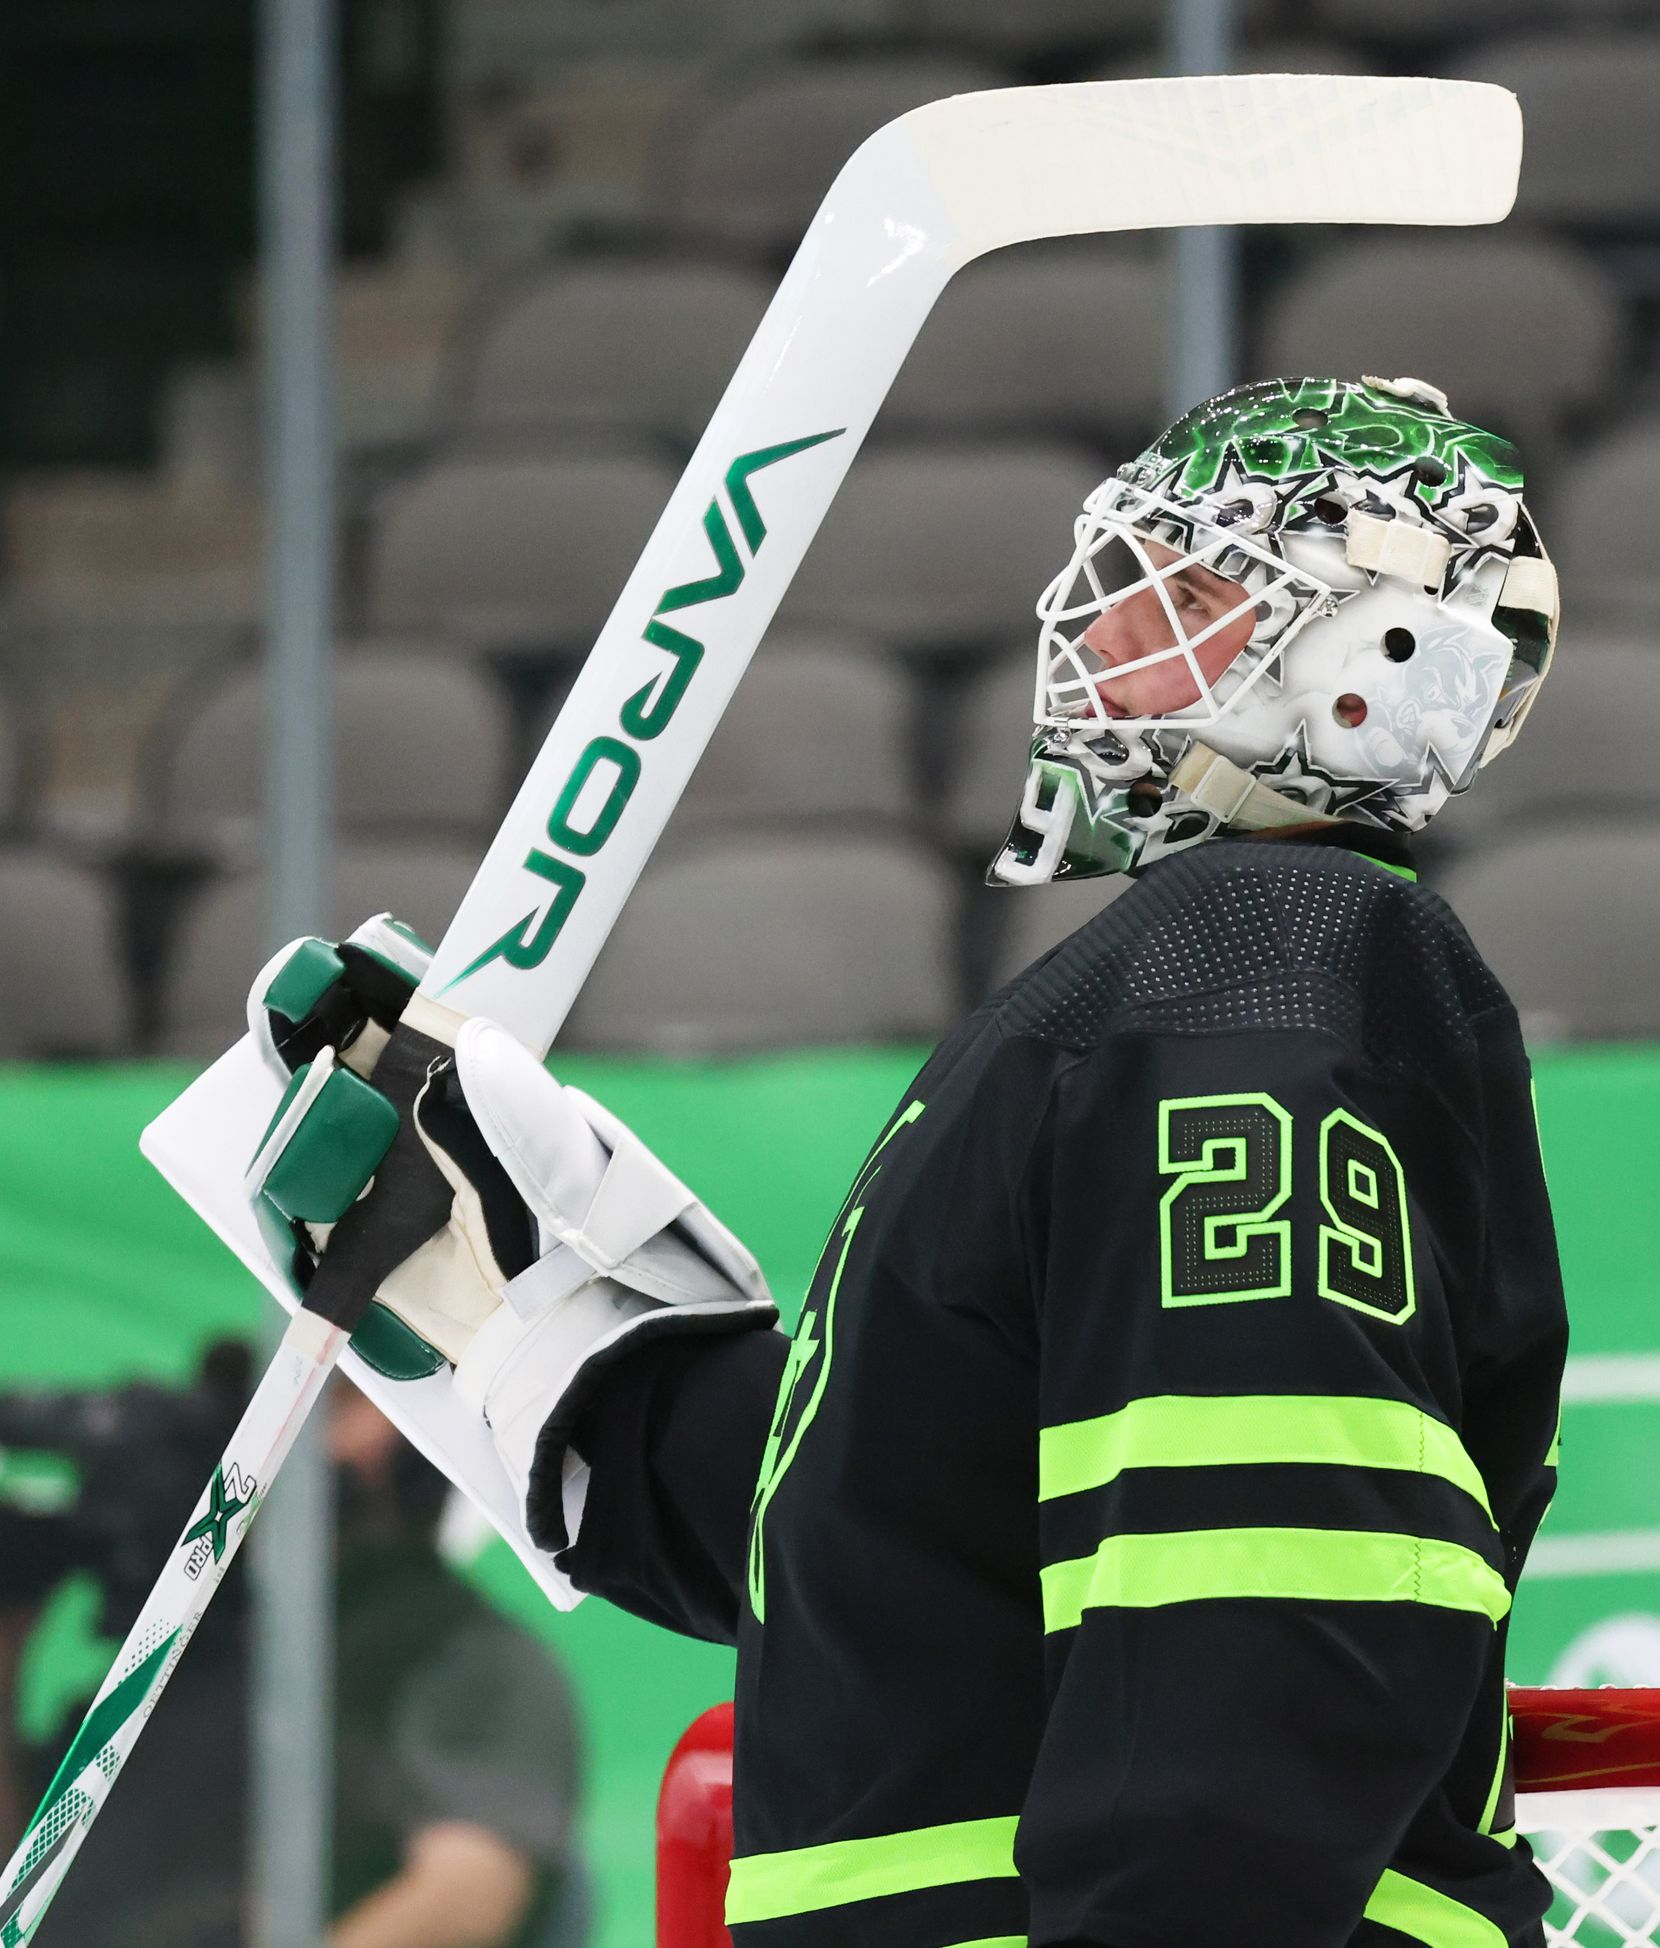 Dallas Stars goaltender Jake Oettinger (29) watches a replay after the Dallas Stars scored in a game against the Detroit Red Wings during the second period of play at American Airlines Center on Thursday, January 28, 2021in Dallas. (Vernon Bryant/The Dallas Morning News)